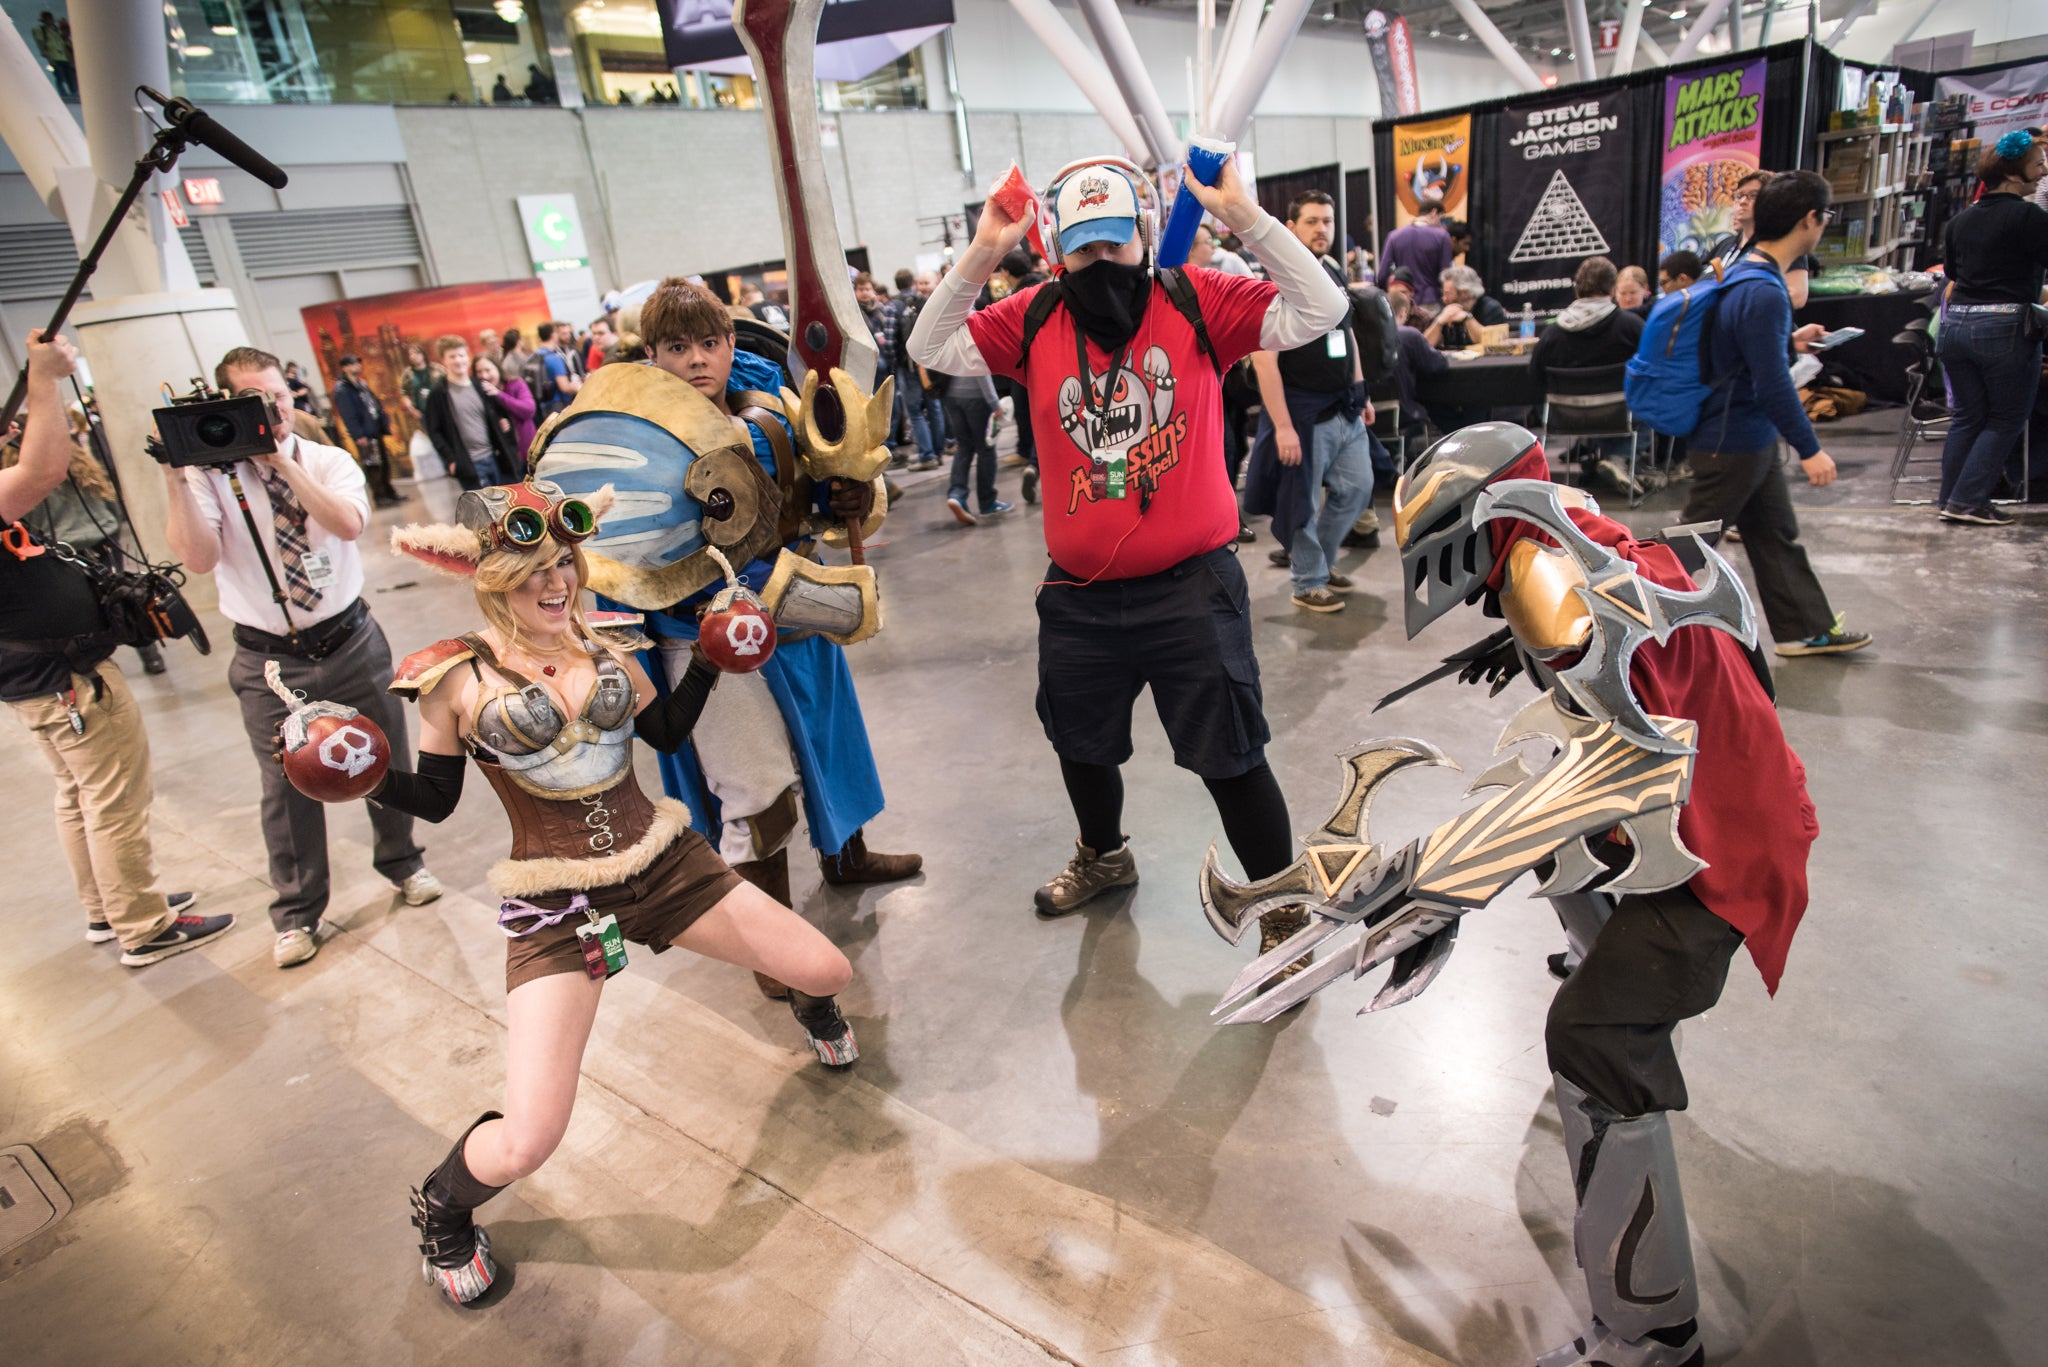 The Coolest Cosplay at PAX East, Day 3